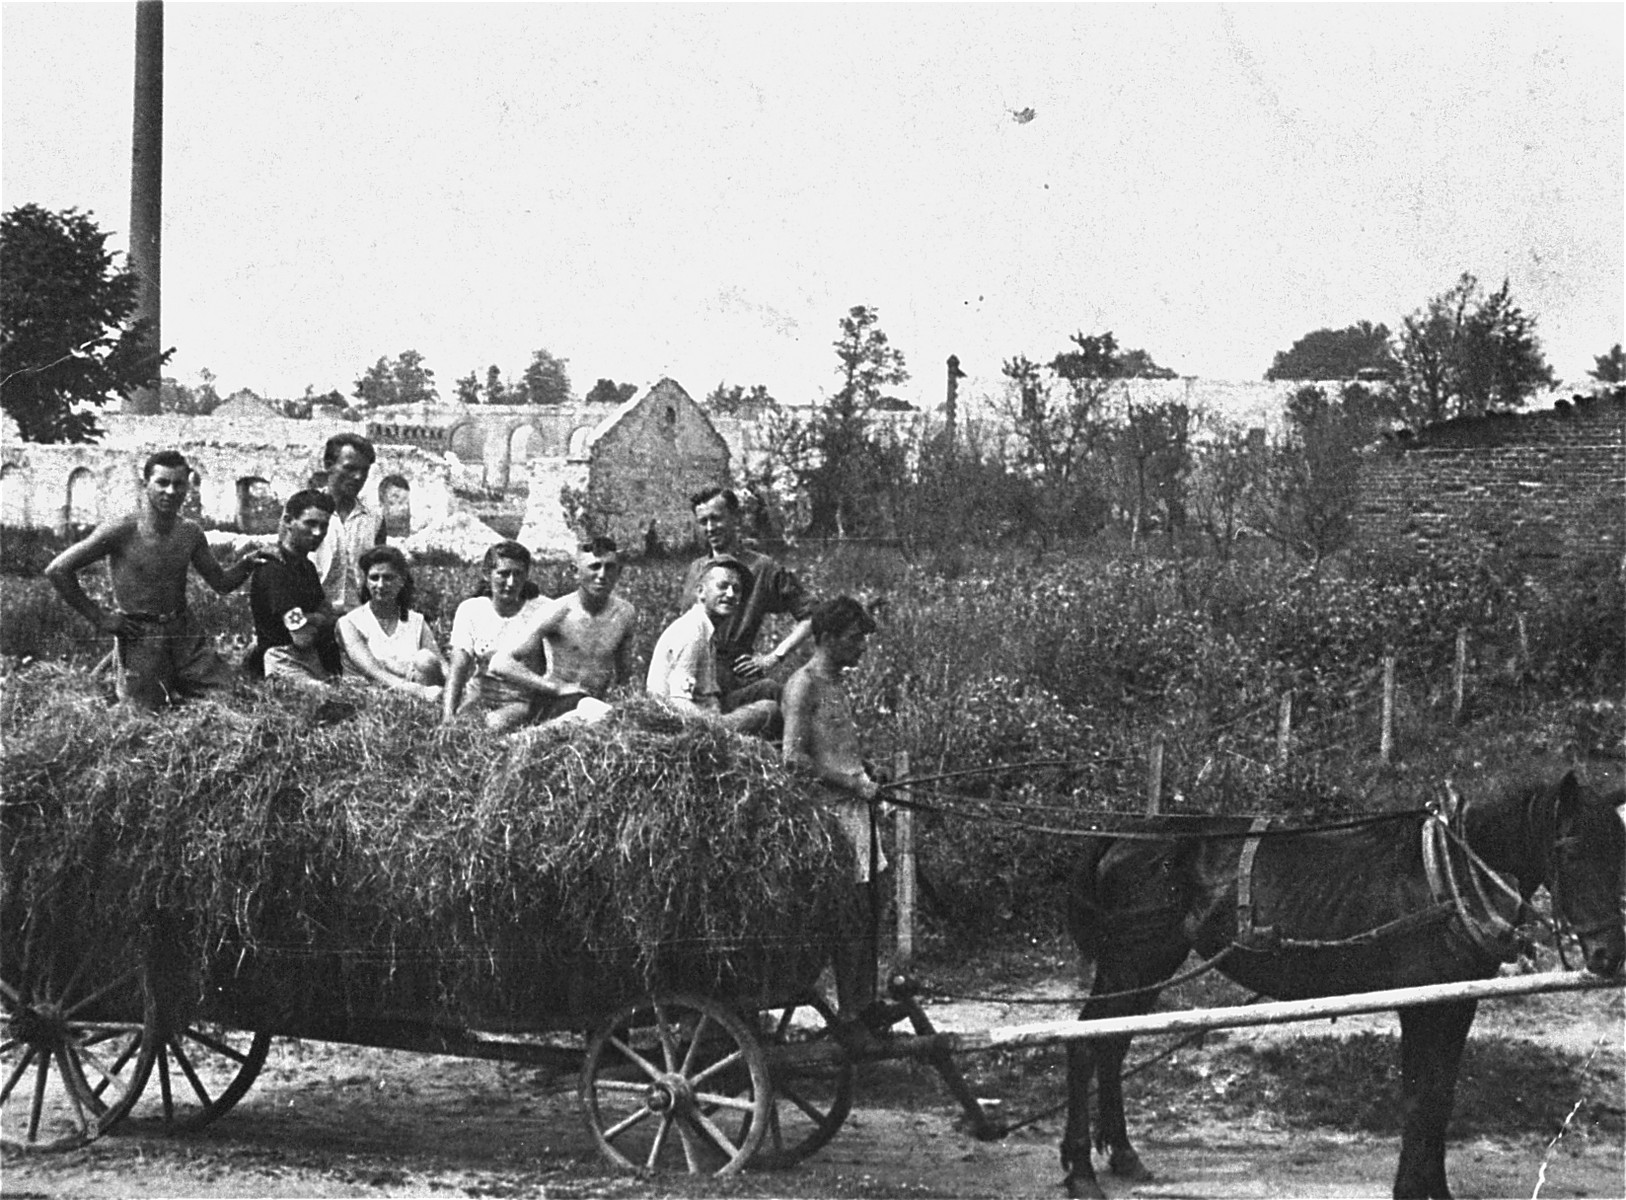 Members of the Hashomer Hatzair Zionist collective in Zarki ride on a hay wagon on their farm.    Pictured from left to right are Motek Weinrib, Berel (Berek) Lemel, Srulek Warszawski, Lodzia Hamersztajn, Chagit Elster, Zborowski, unidentified, Arie Wilner and Avram Zilbersztajn.  The photo was taken during the visit of Arie Wilner.